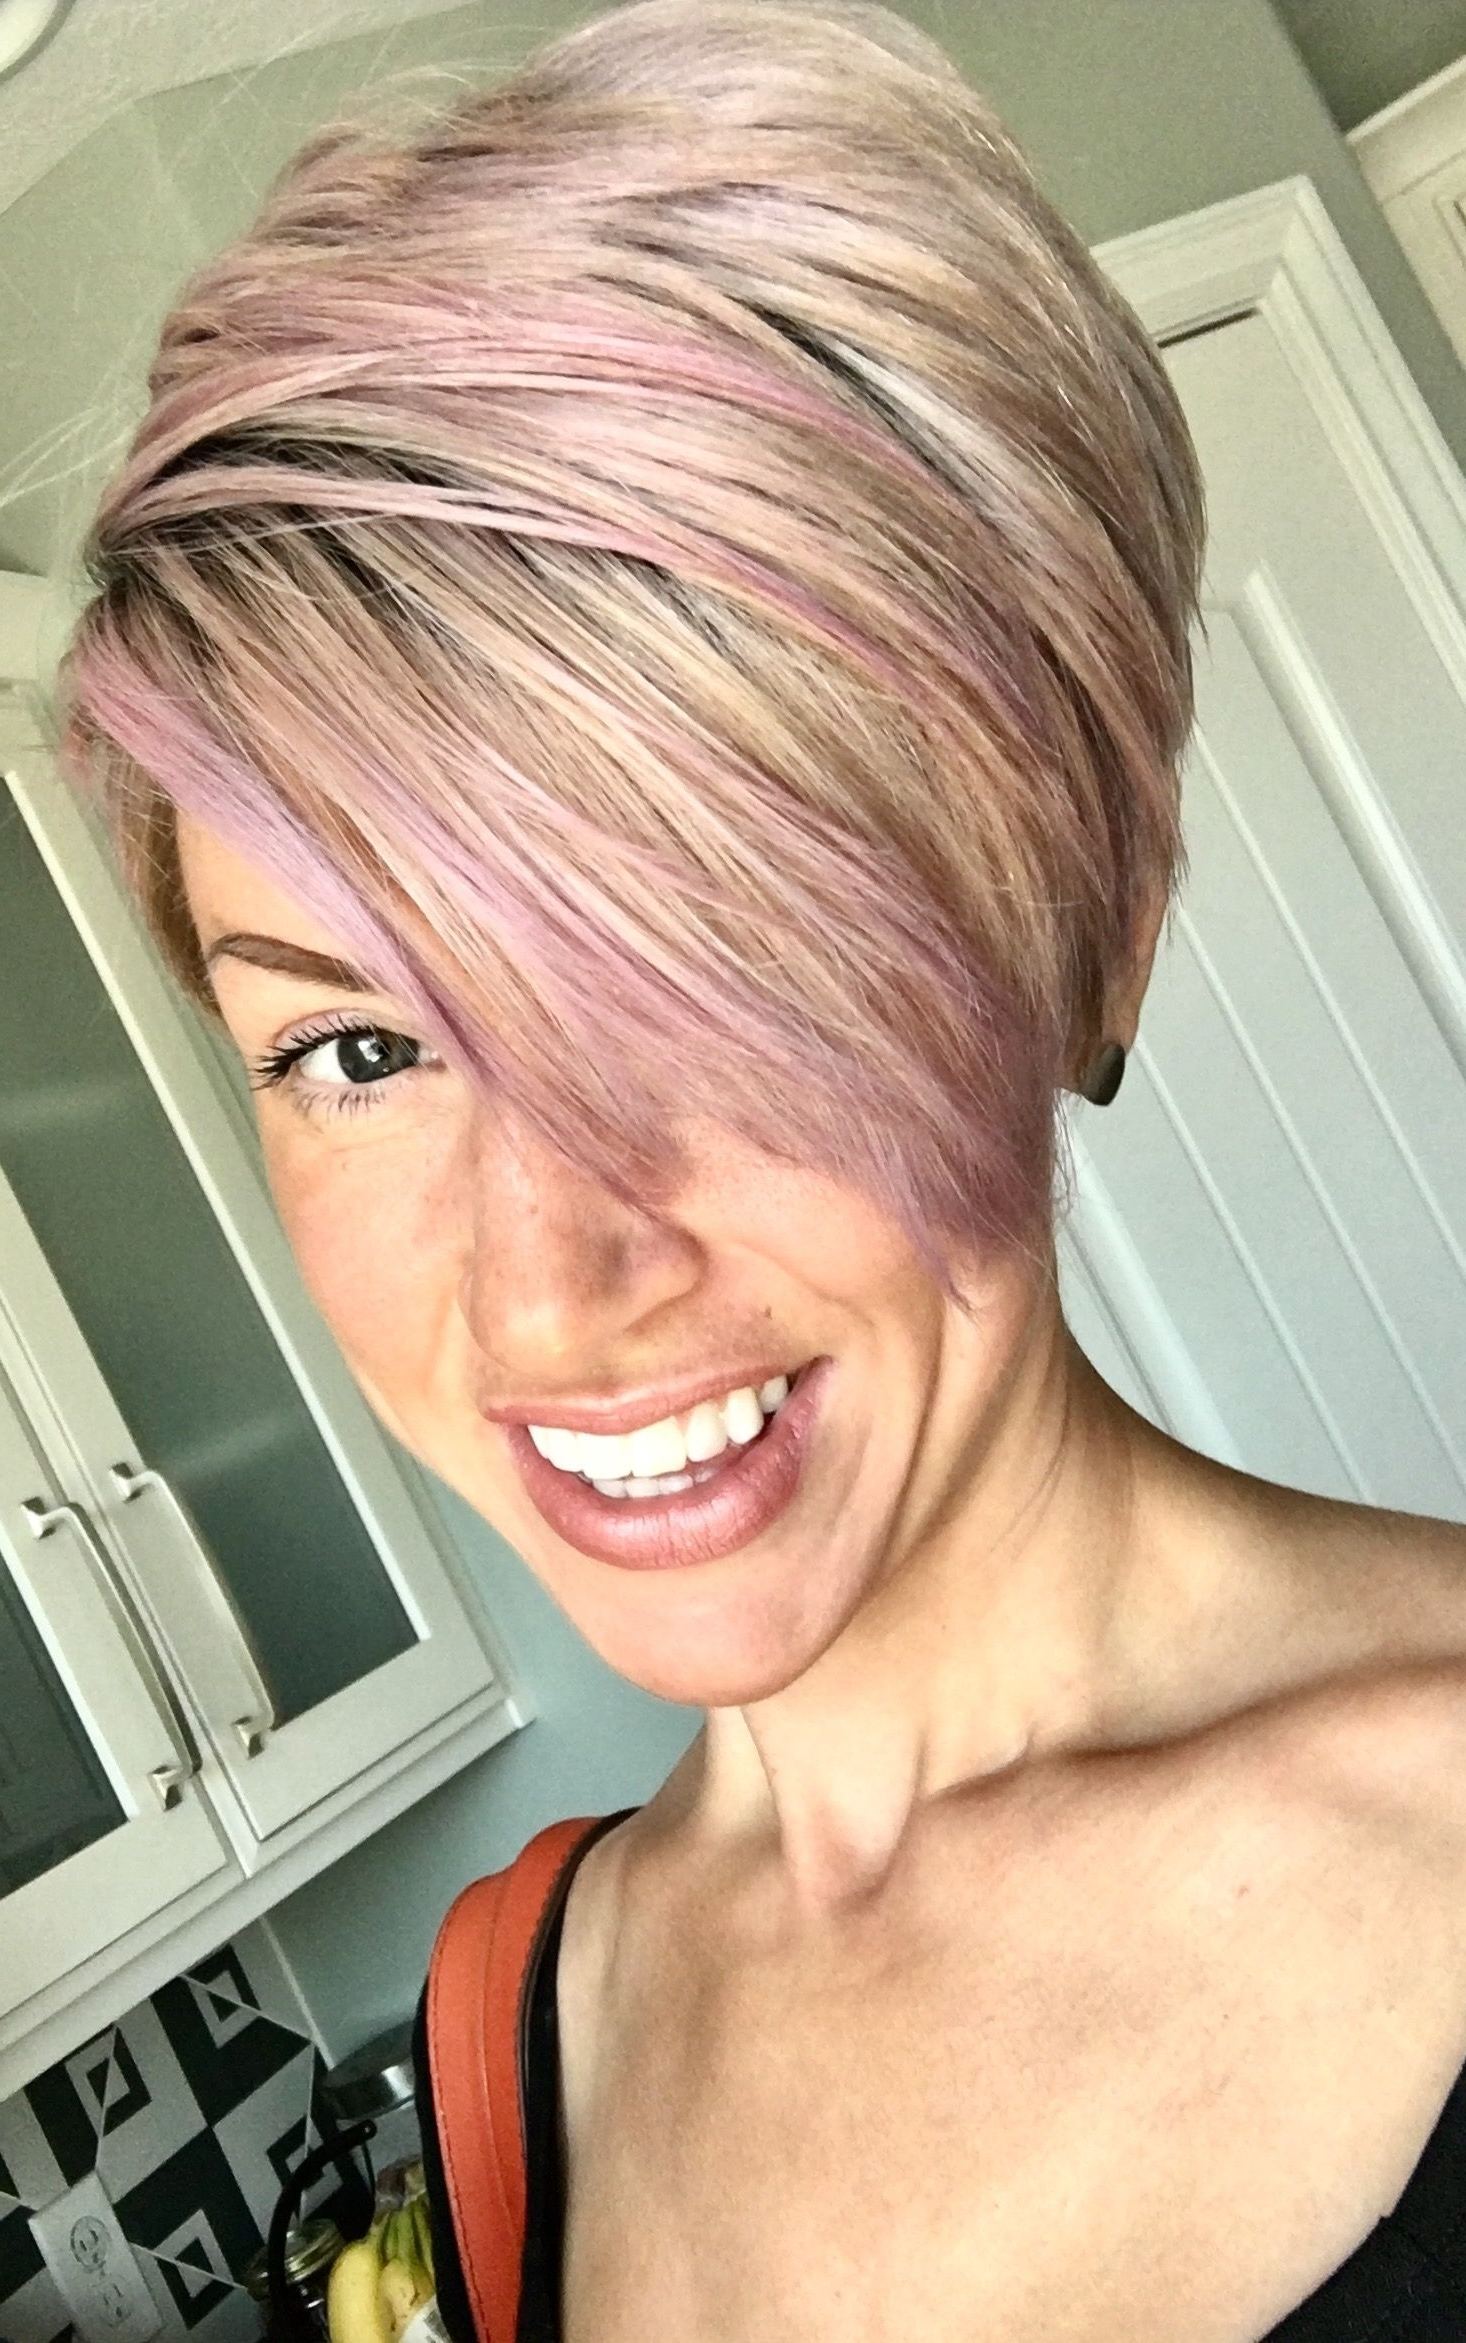 Hair Pertaining To Most Current Rose Gold Pixie Hairstyles (View 7 of 20)